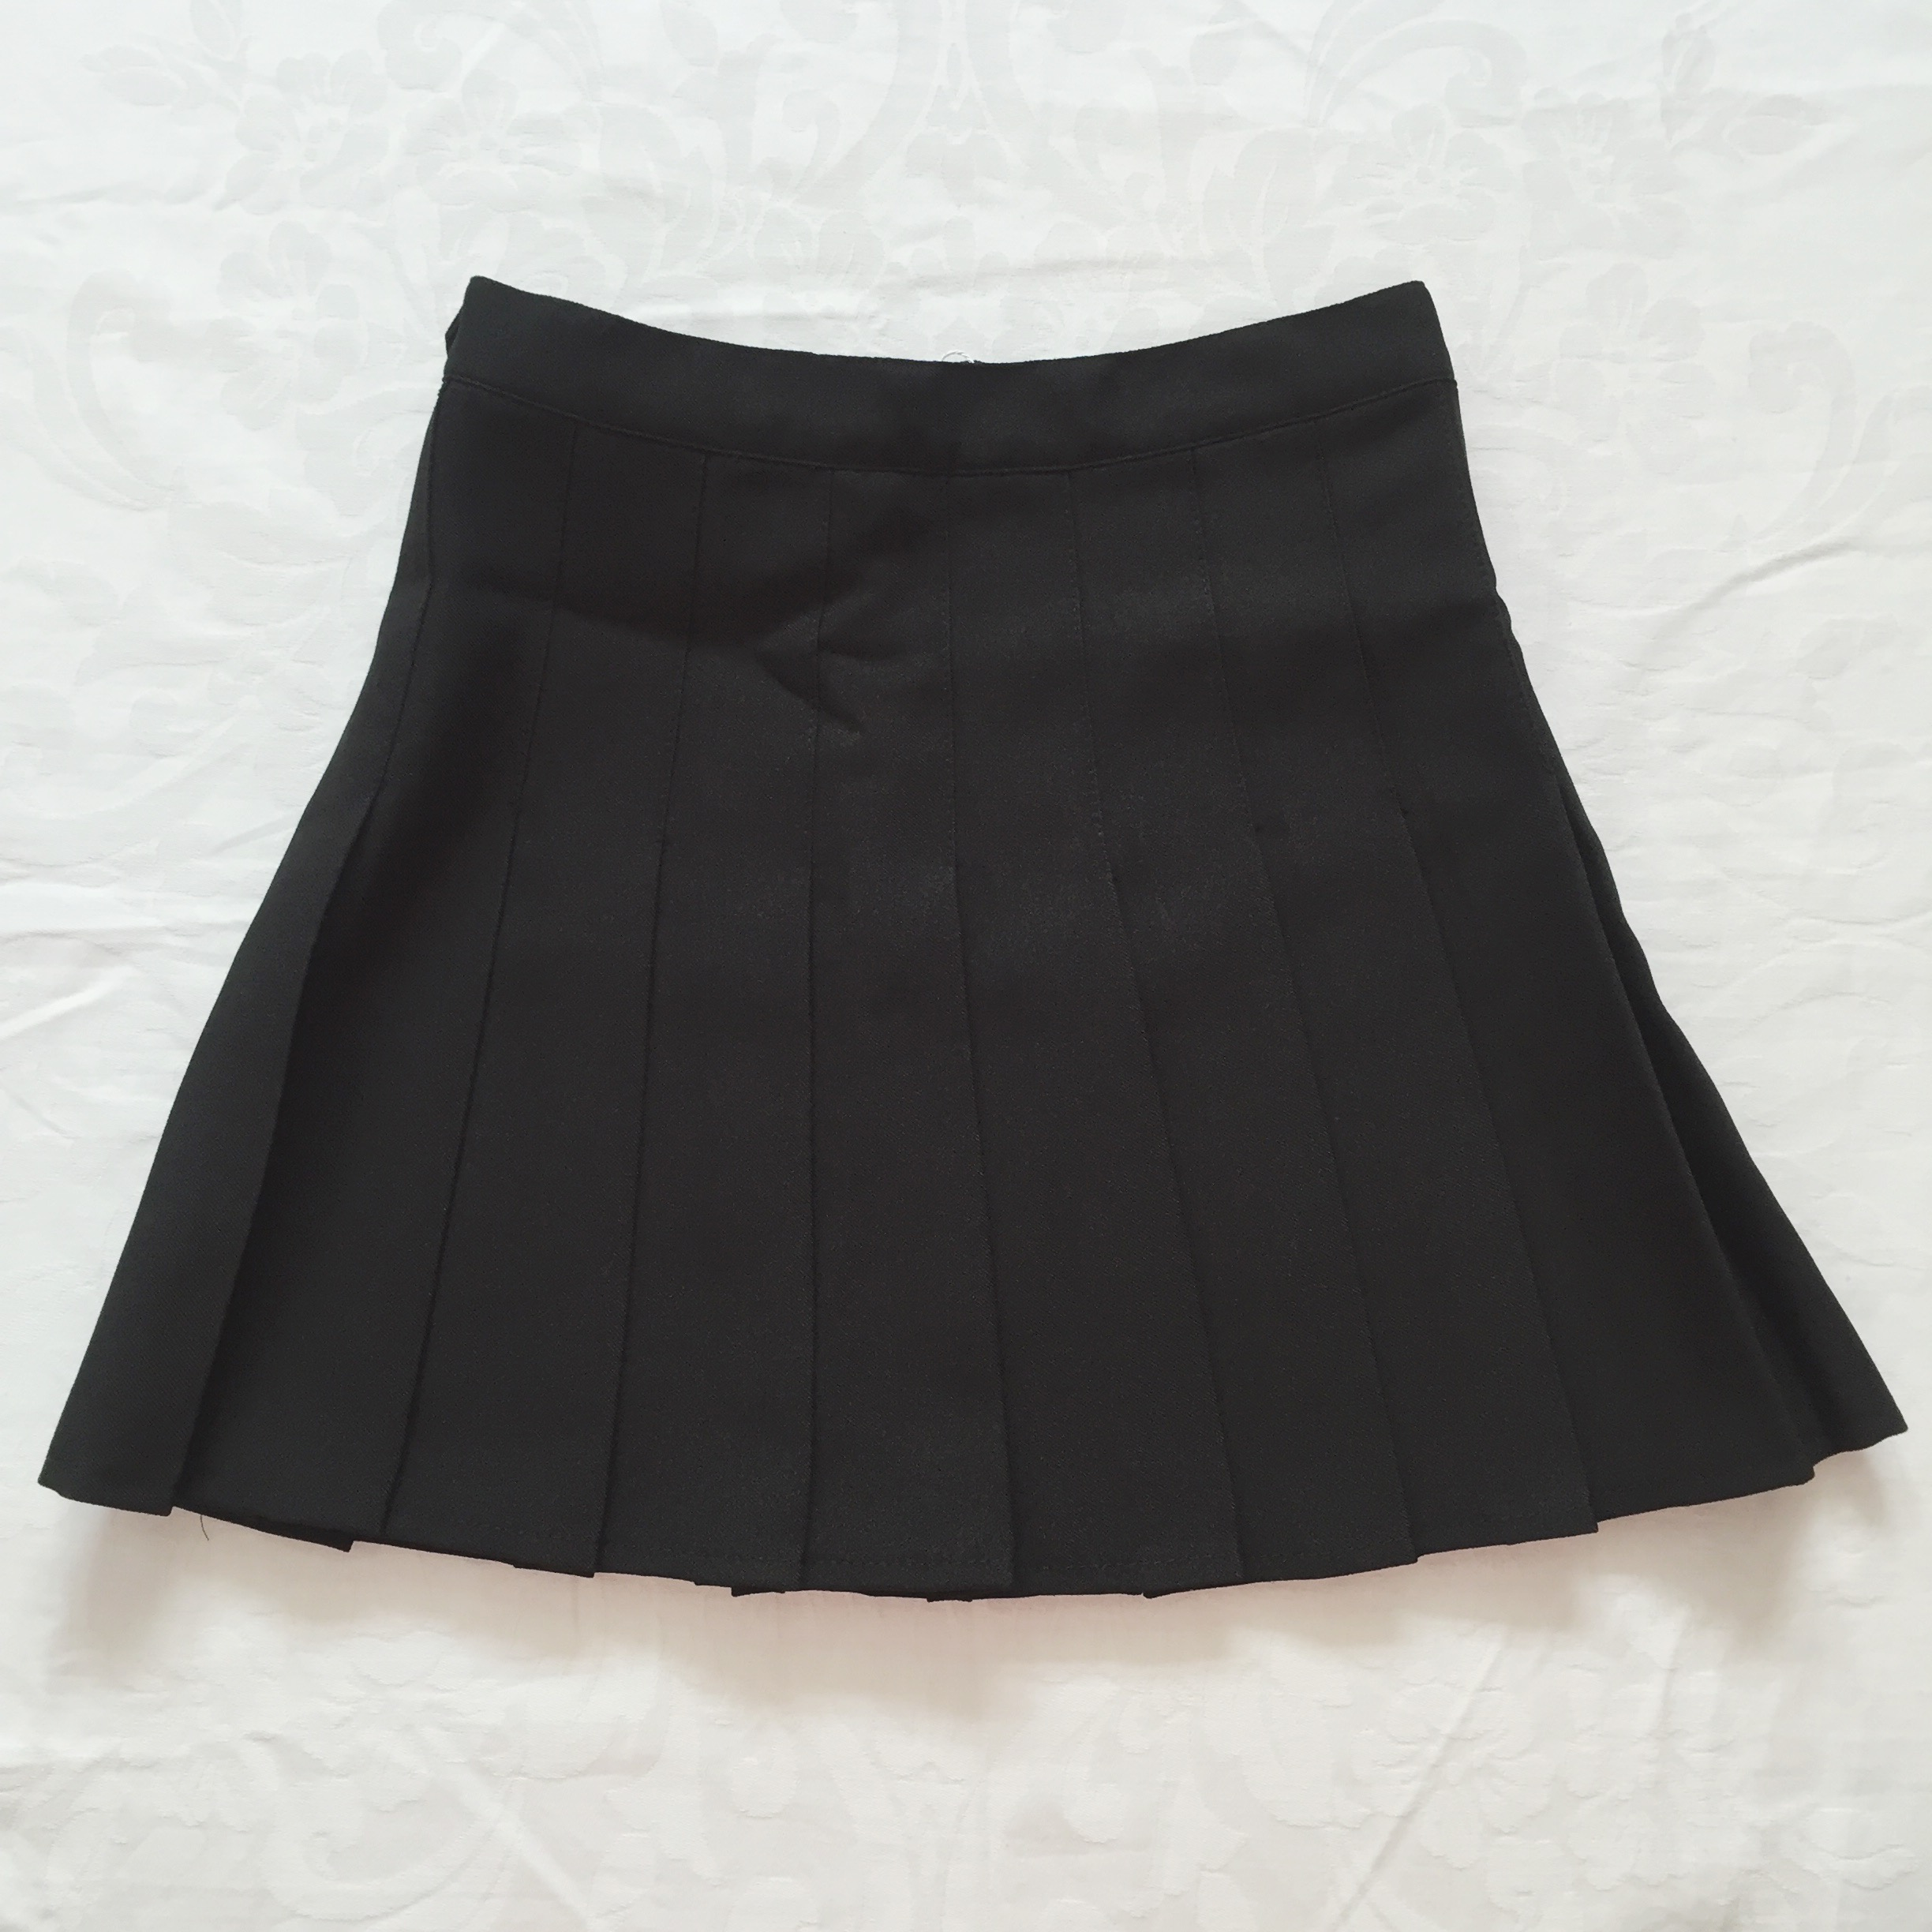 pleated tennis skirt black 183 megoosta fashion 183 free